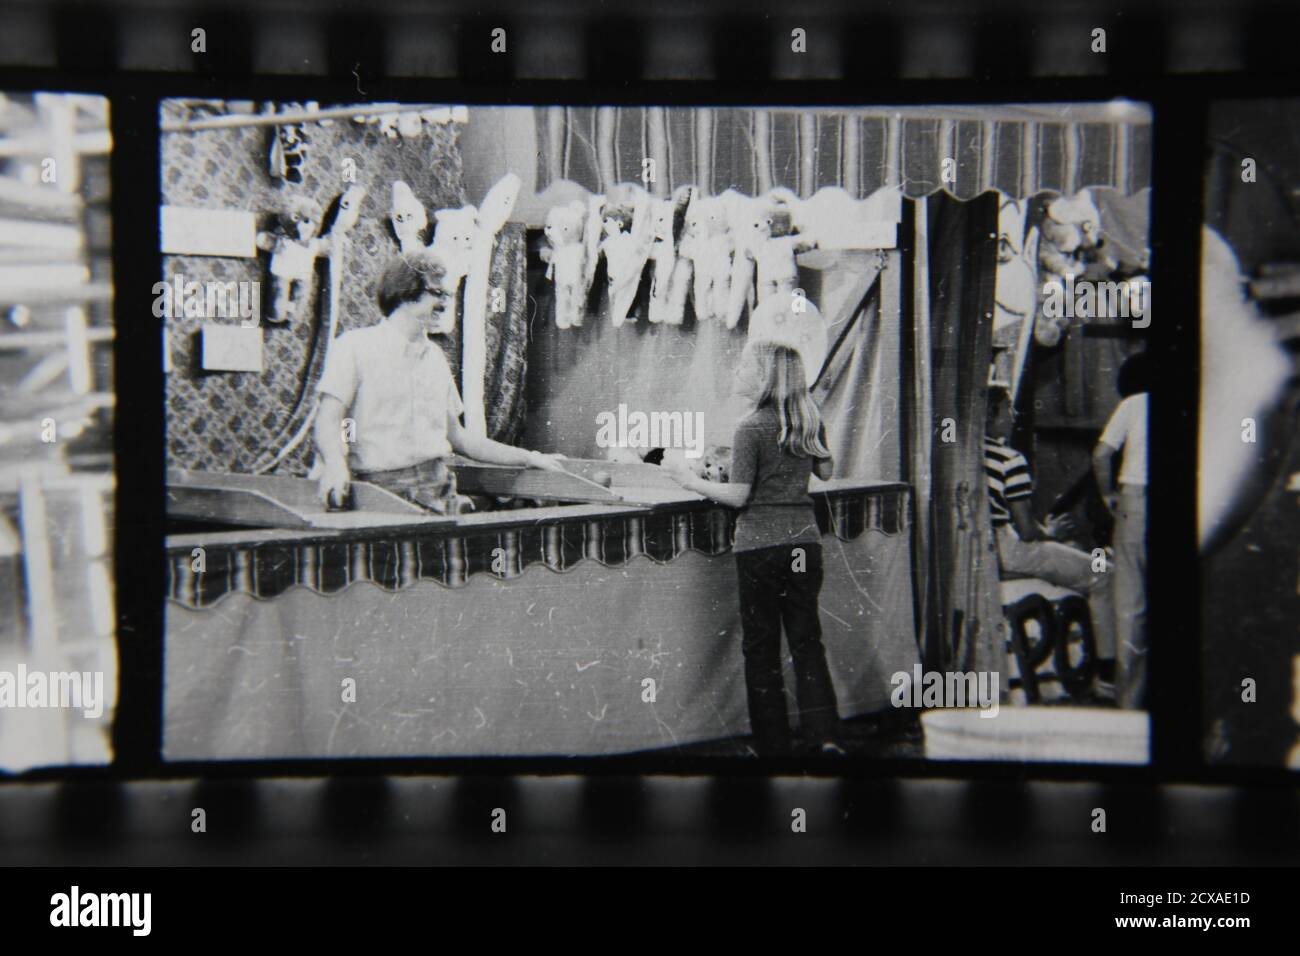 Fine 1970s vintage black and white photography of a regular guy manning a carnival game booth at a carnival street fair. Stock Photo